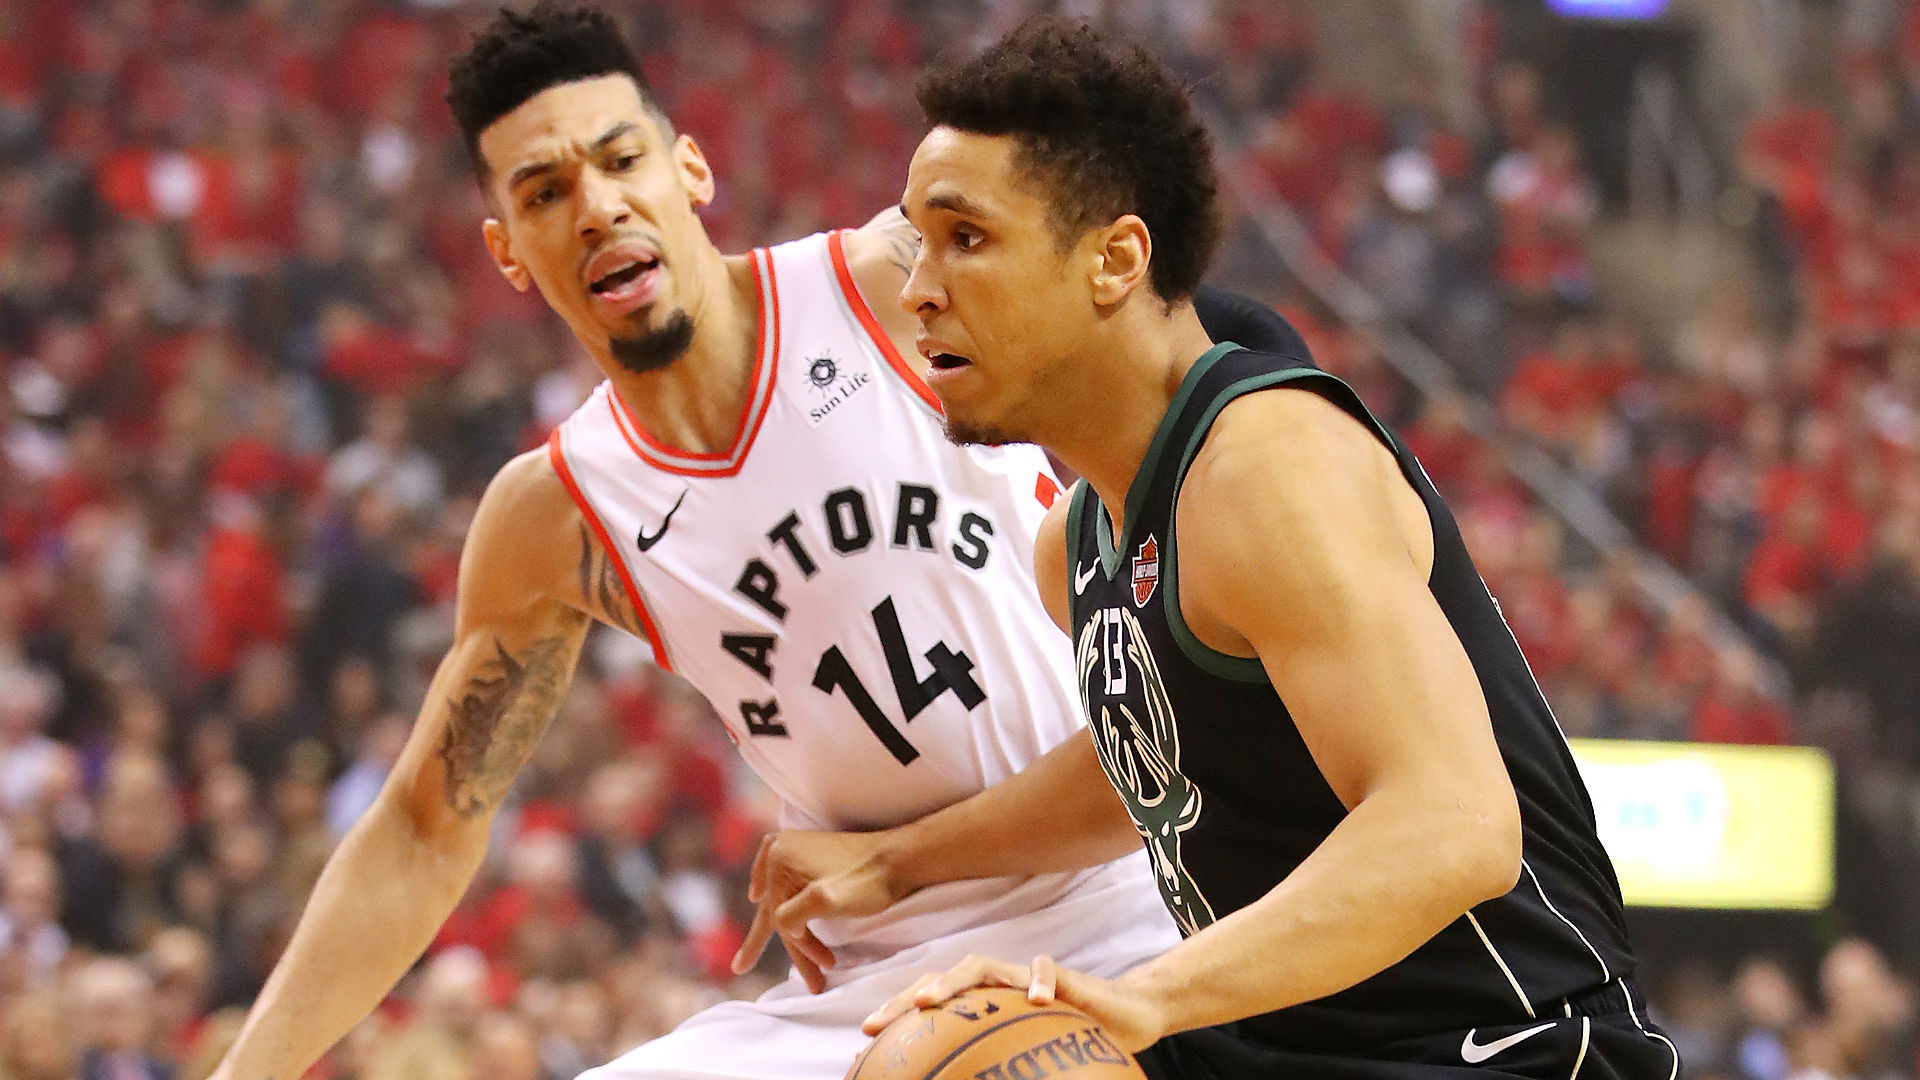 NBA free agency rumors: 76ers have 'some level of interest' in Malcolm Brogdon, Danny Green